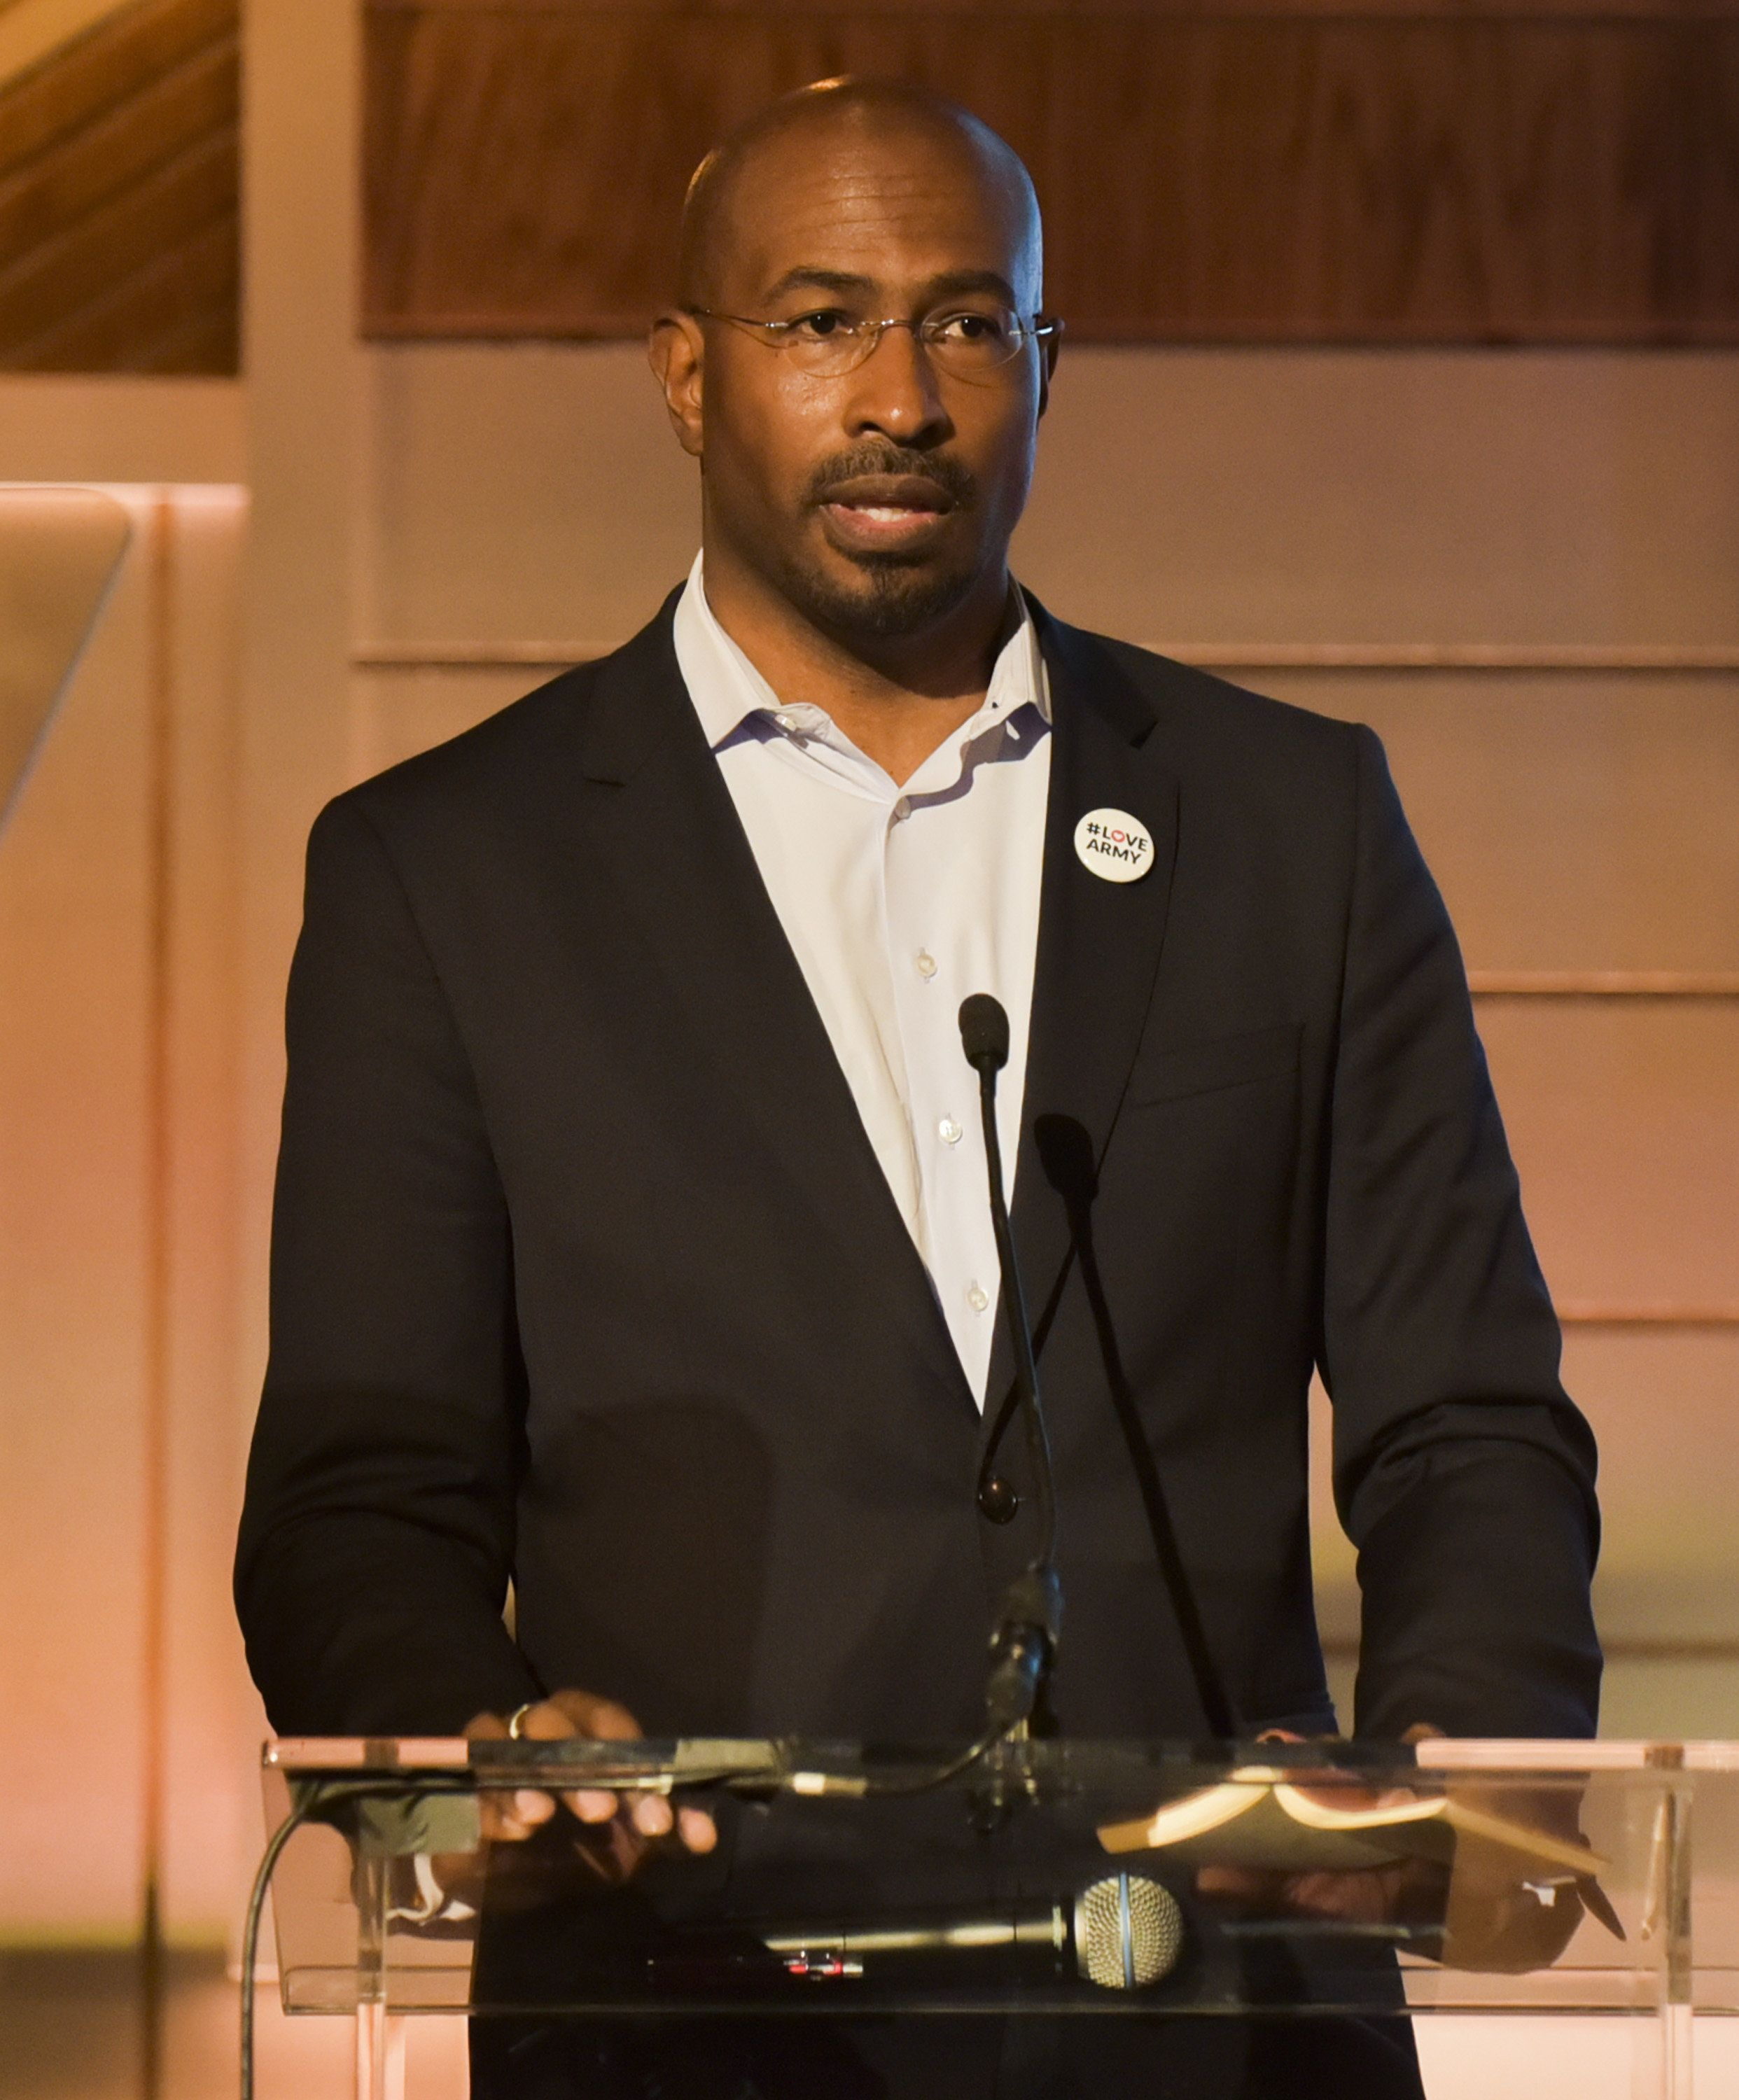 BEVERLY HILLS, CA - MARCH 23:  CNN Contributer and Dream Corps Co-Founder and President Van Jones speaks onstage at the EMA Impact Summit at Montage Beverly Hills on March 23, 2017 in Beverly Hills, California.  (Photo by Rodin Eckenroth/Getty Images)